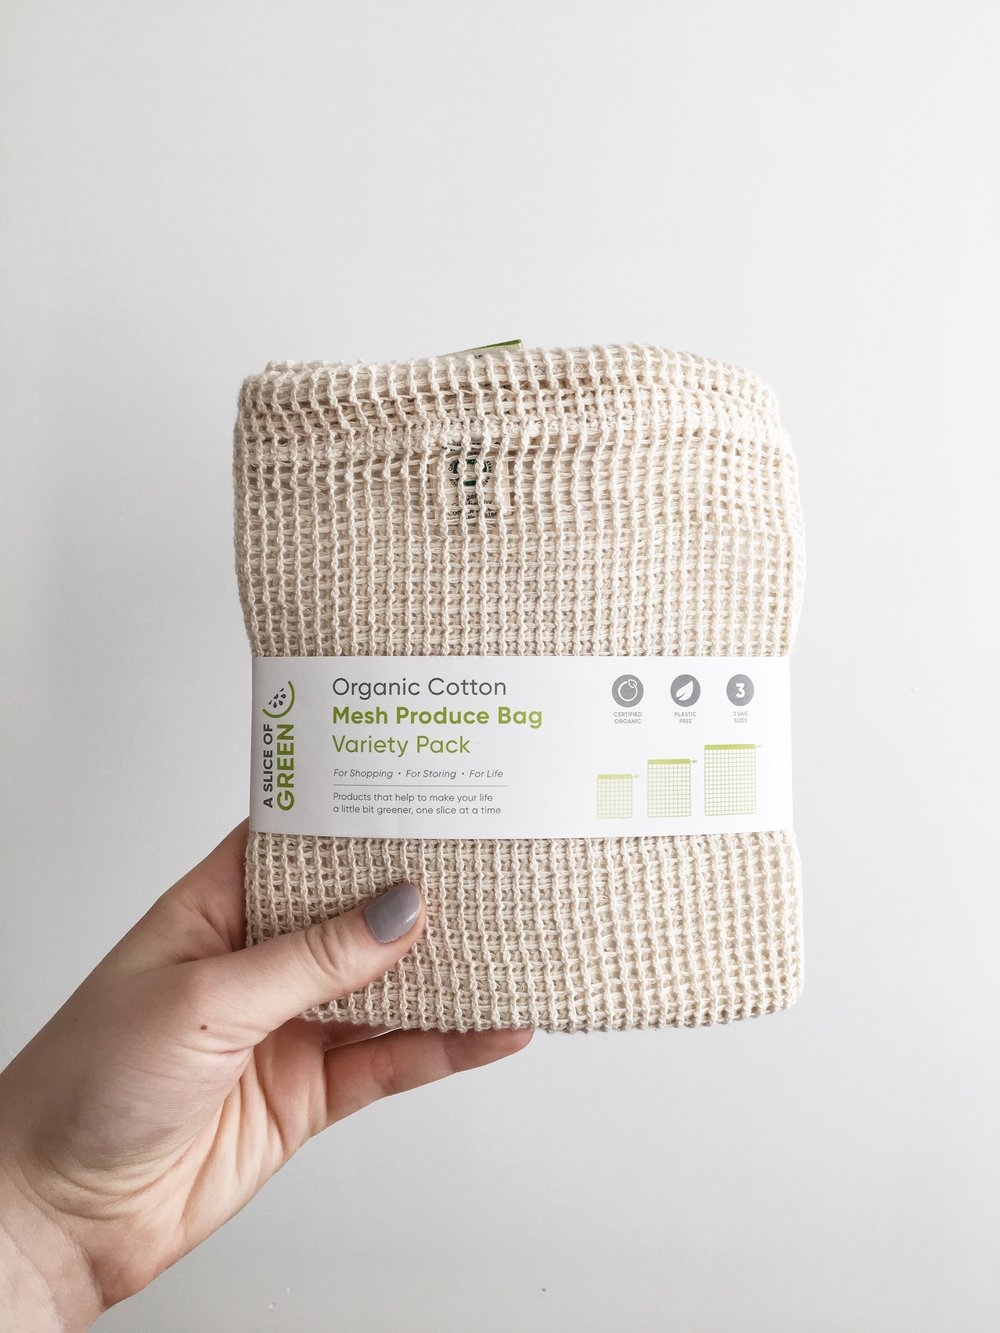 Mesh Produce Bags £7 from Zero Waste Market.